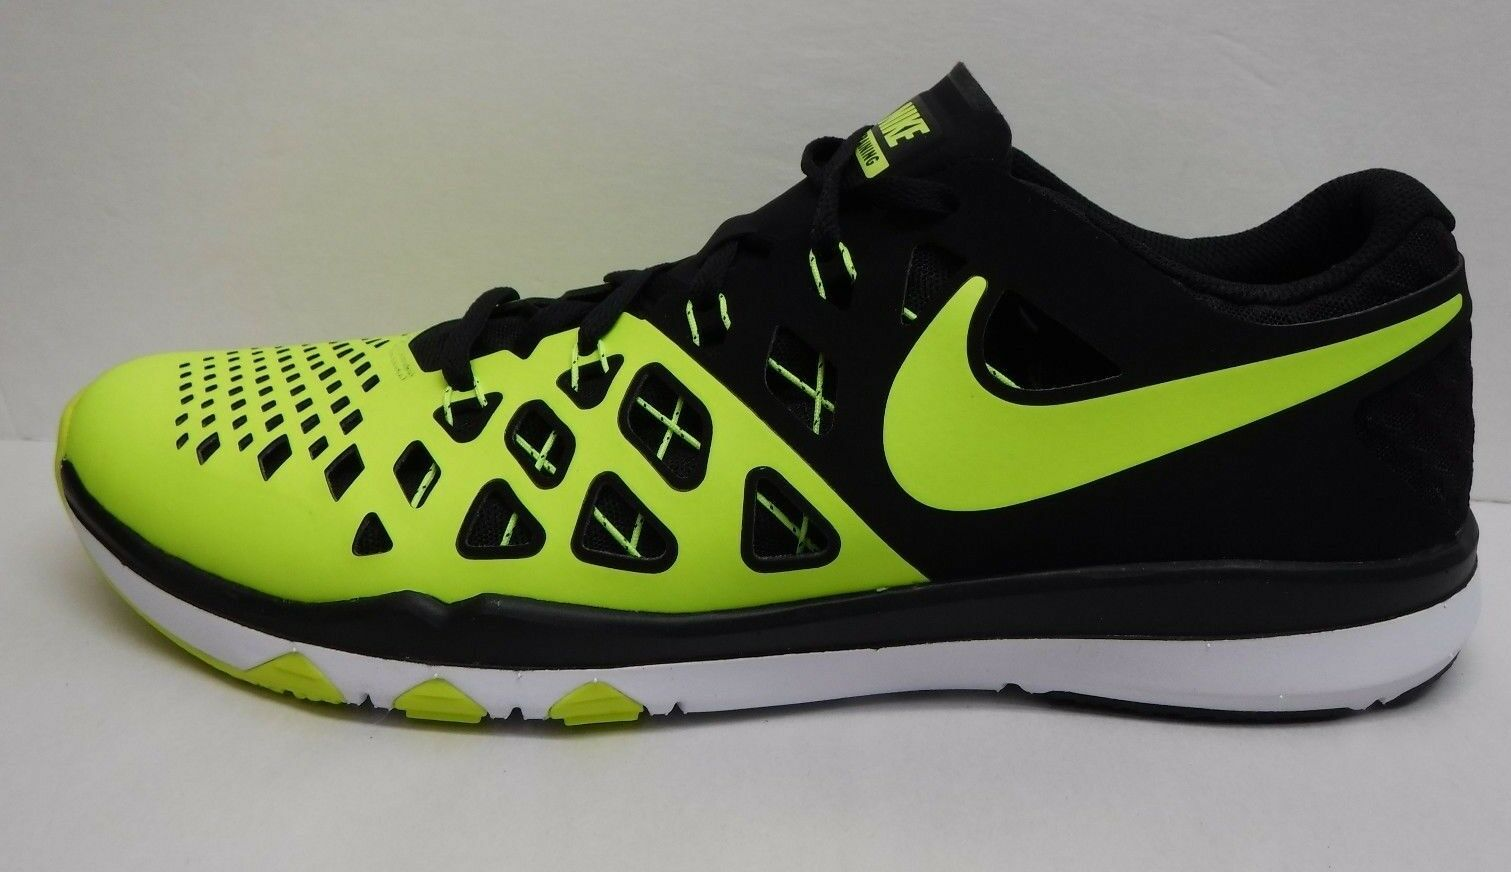 NIke Size 10.5 Training Sneakers Lime Black New Mens Shoes